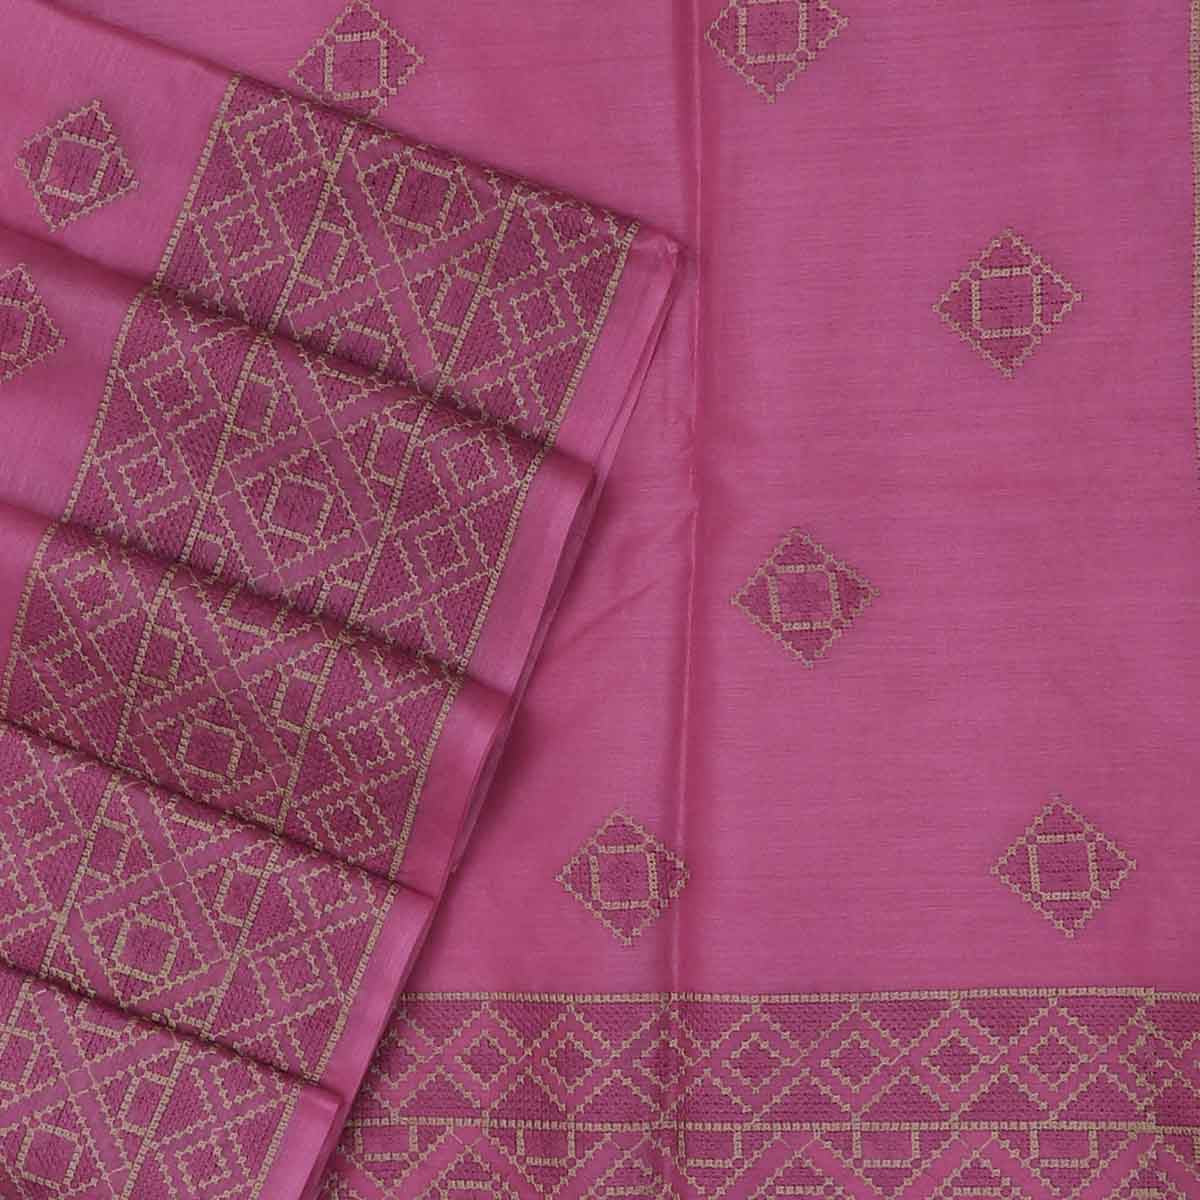 Pure Tussar Saree Light Pink with Simple Embroidery border